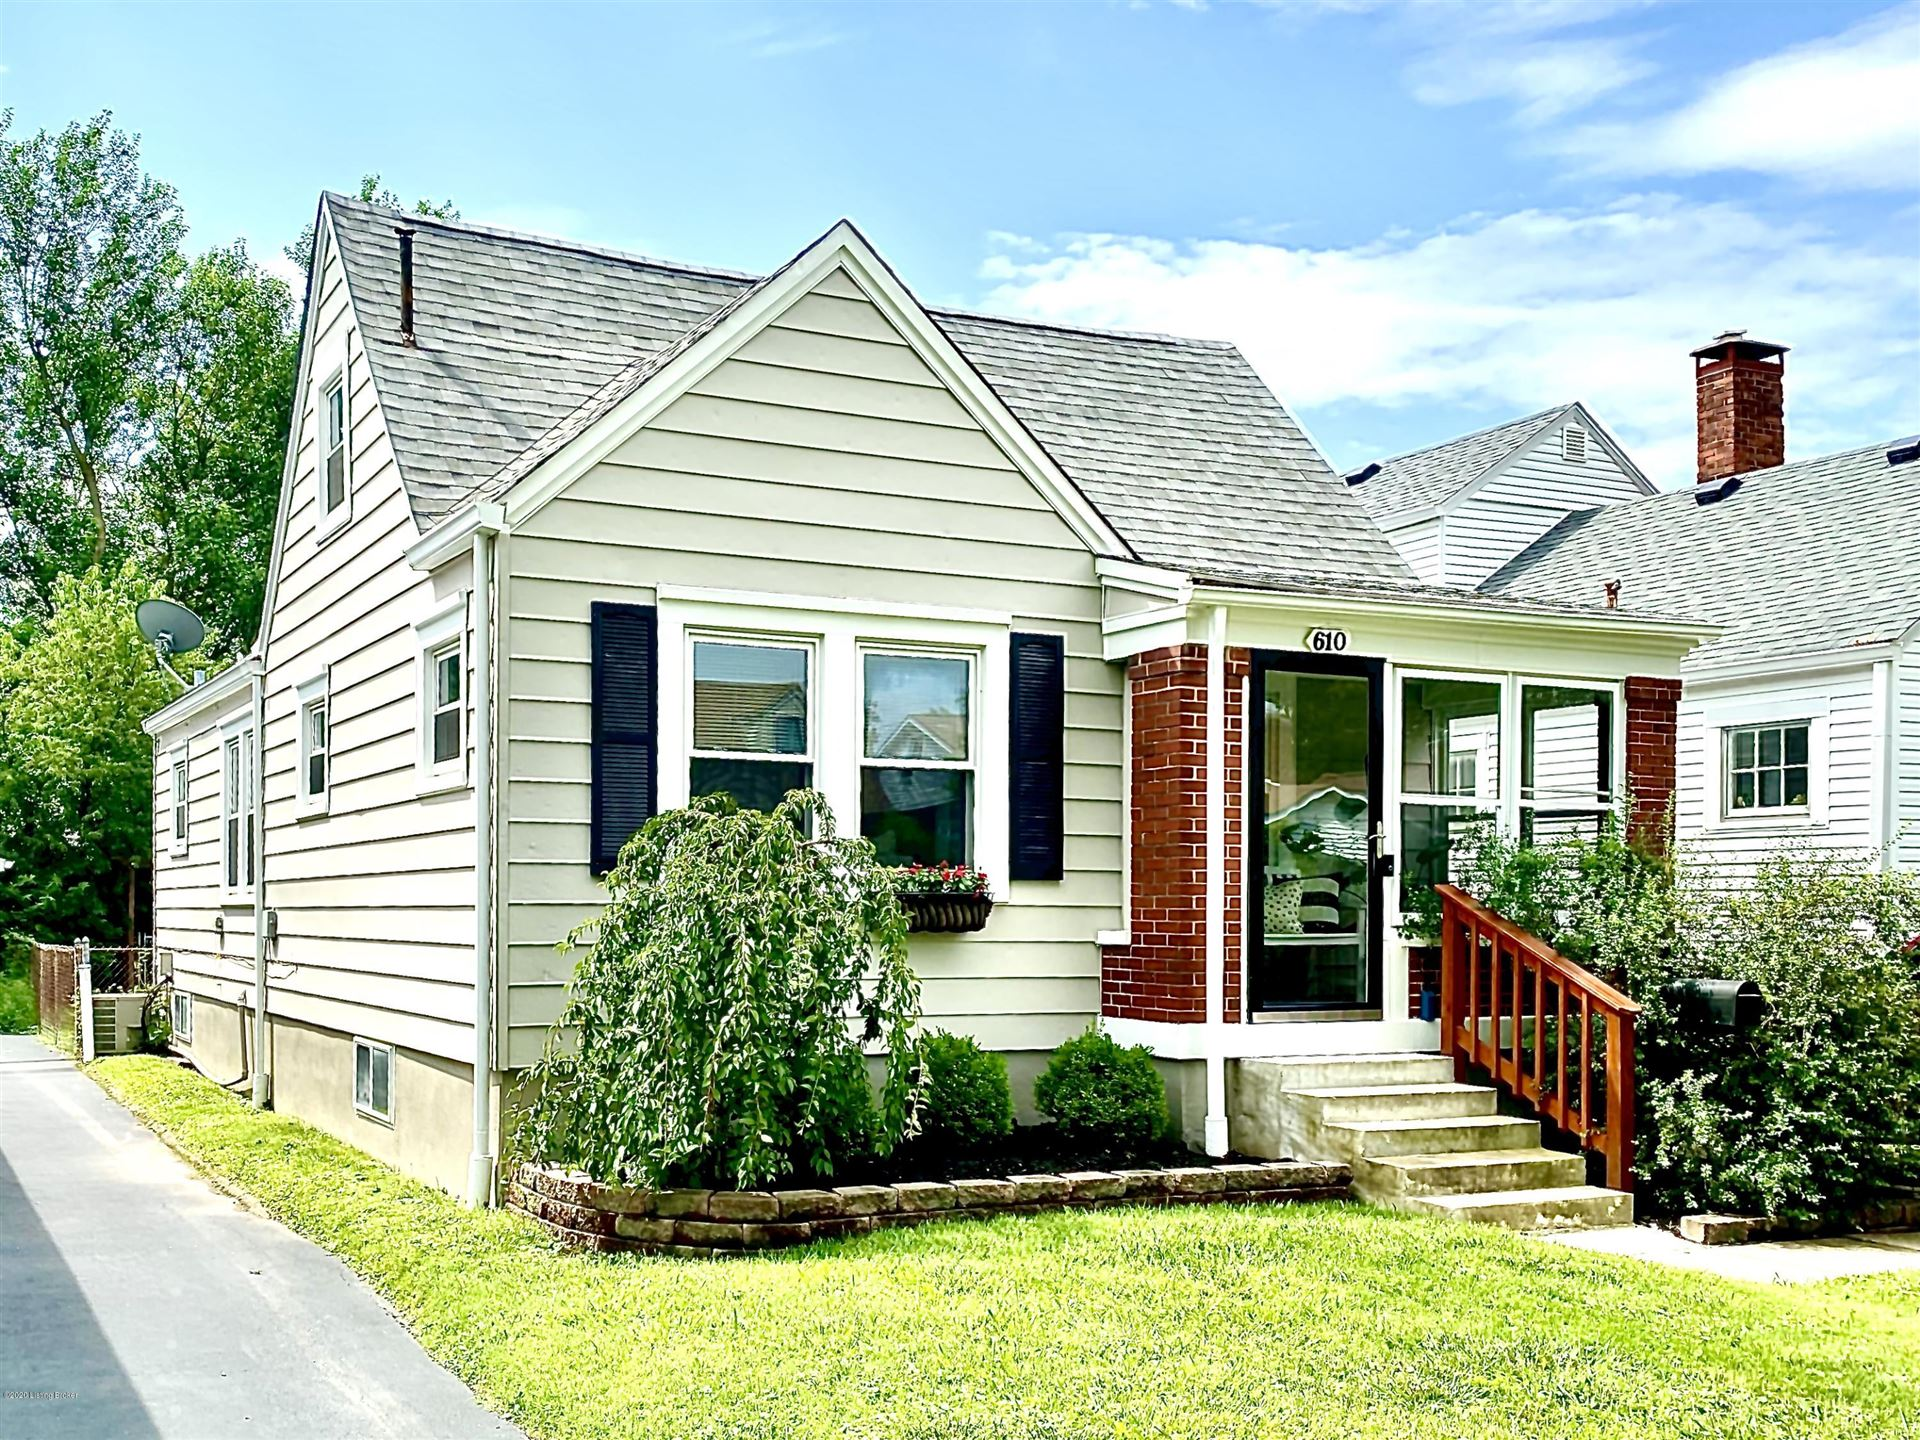 Property Image Of 610 Ervay Ave In Louisville, Ky